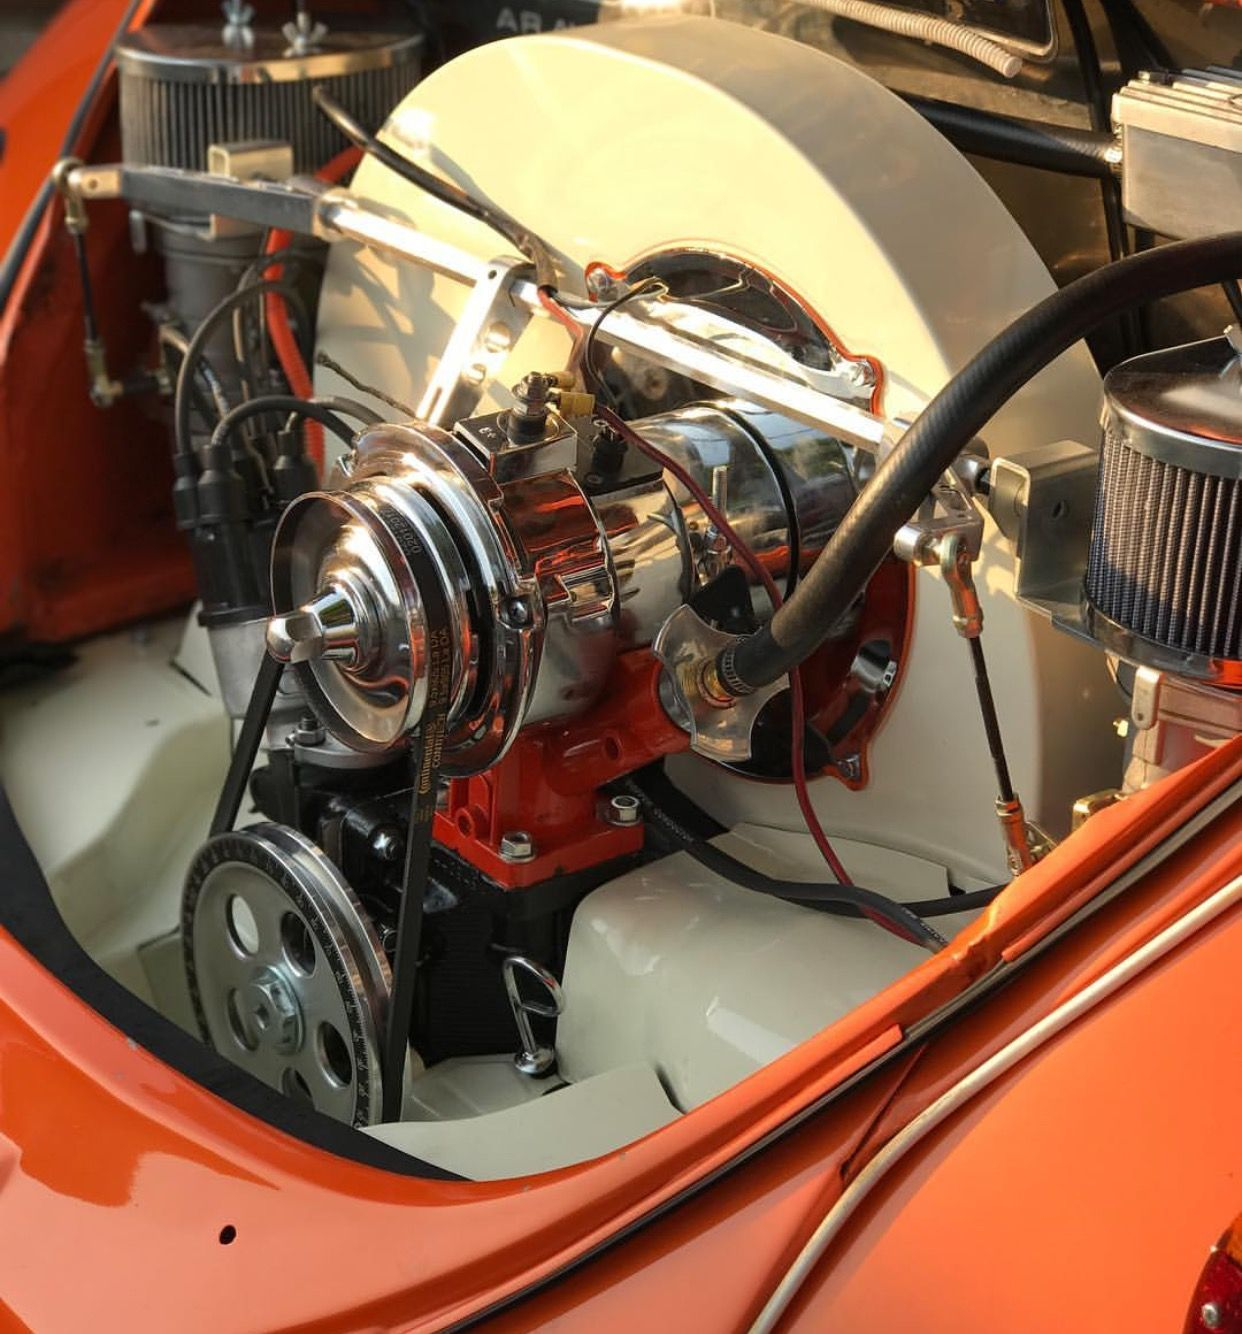 Vw Bug Engines Through The Years: VW Beetle Xtra HP Clean Engine Bay!!!!